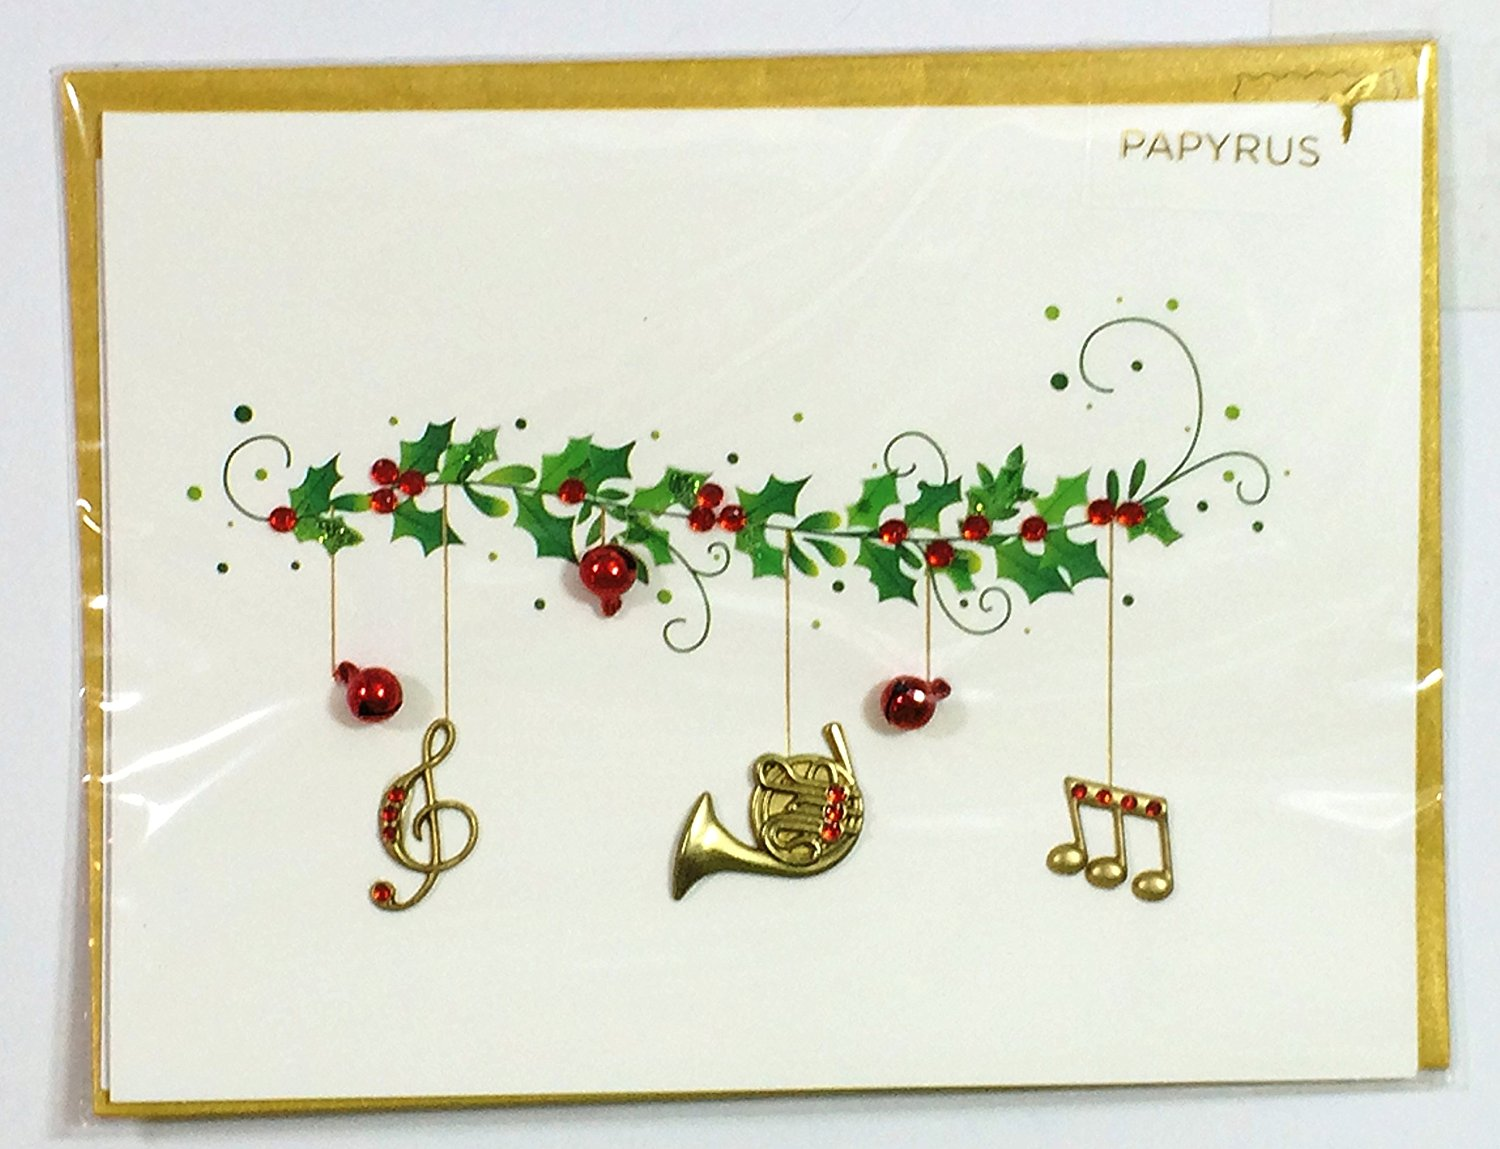 Cheap music notes christmas find music notes christmas deals on get quotations christmas cards for anyoneholly with music notes hornpapyrus m4hsunfo